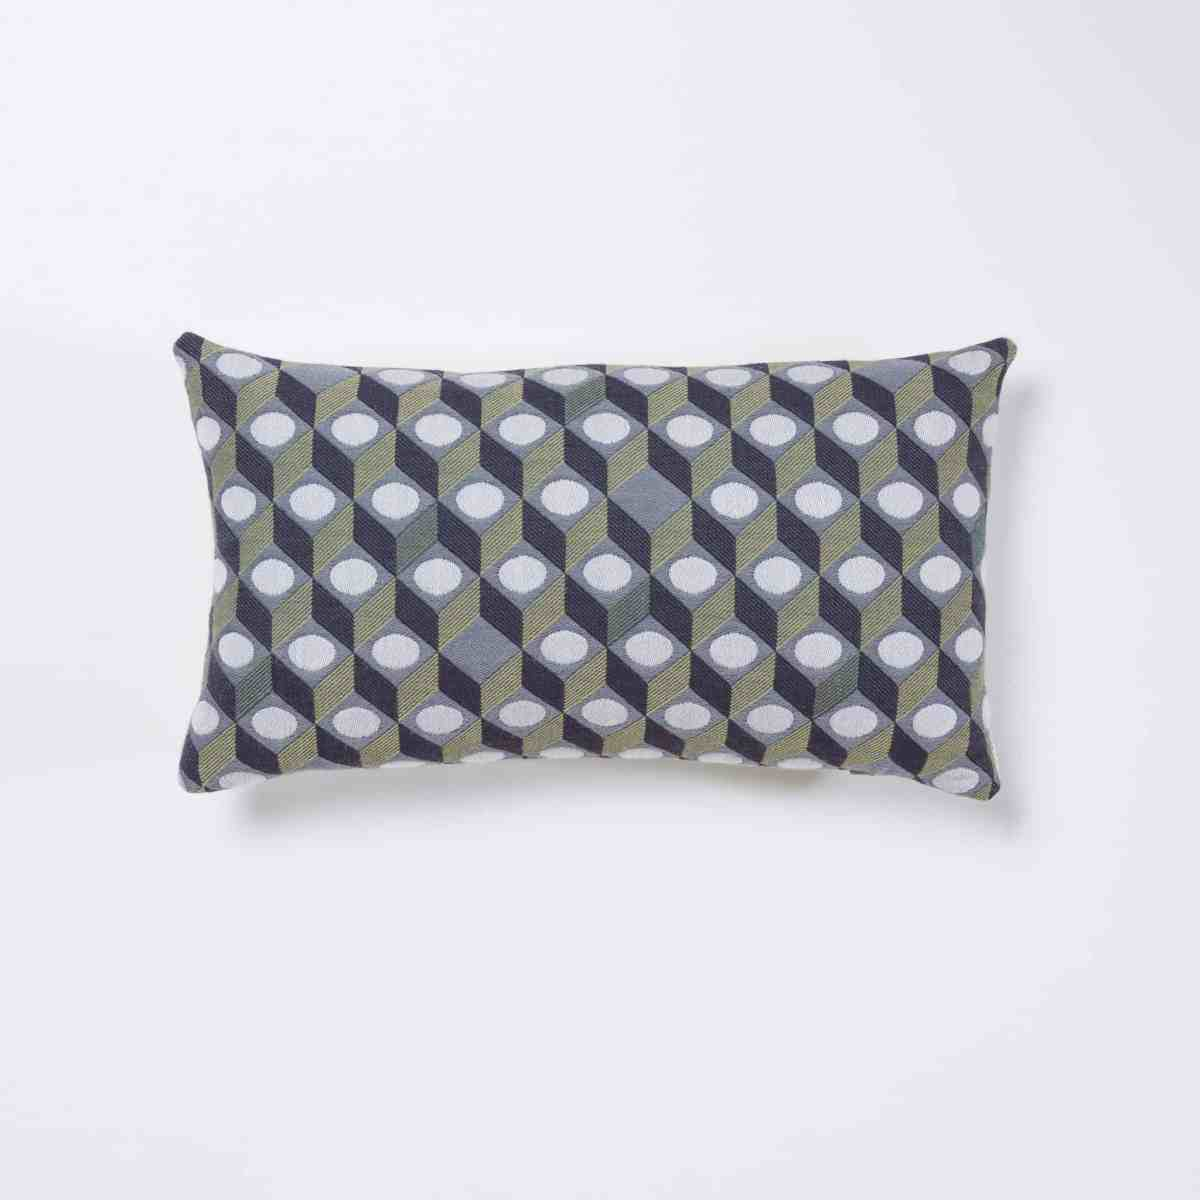 soft-series-rectangular-cushion-small-cubes-green-another-country-002